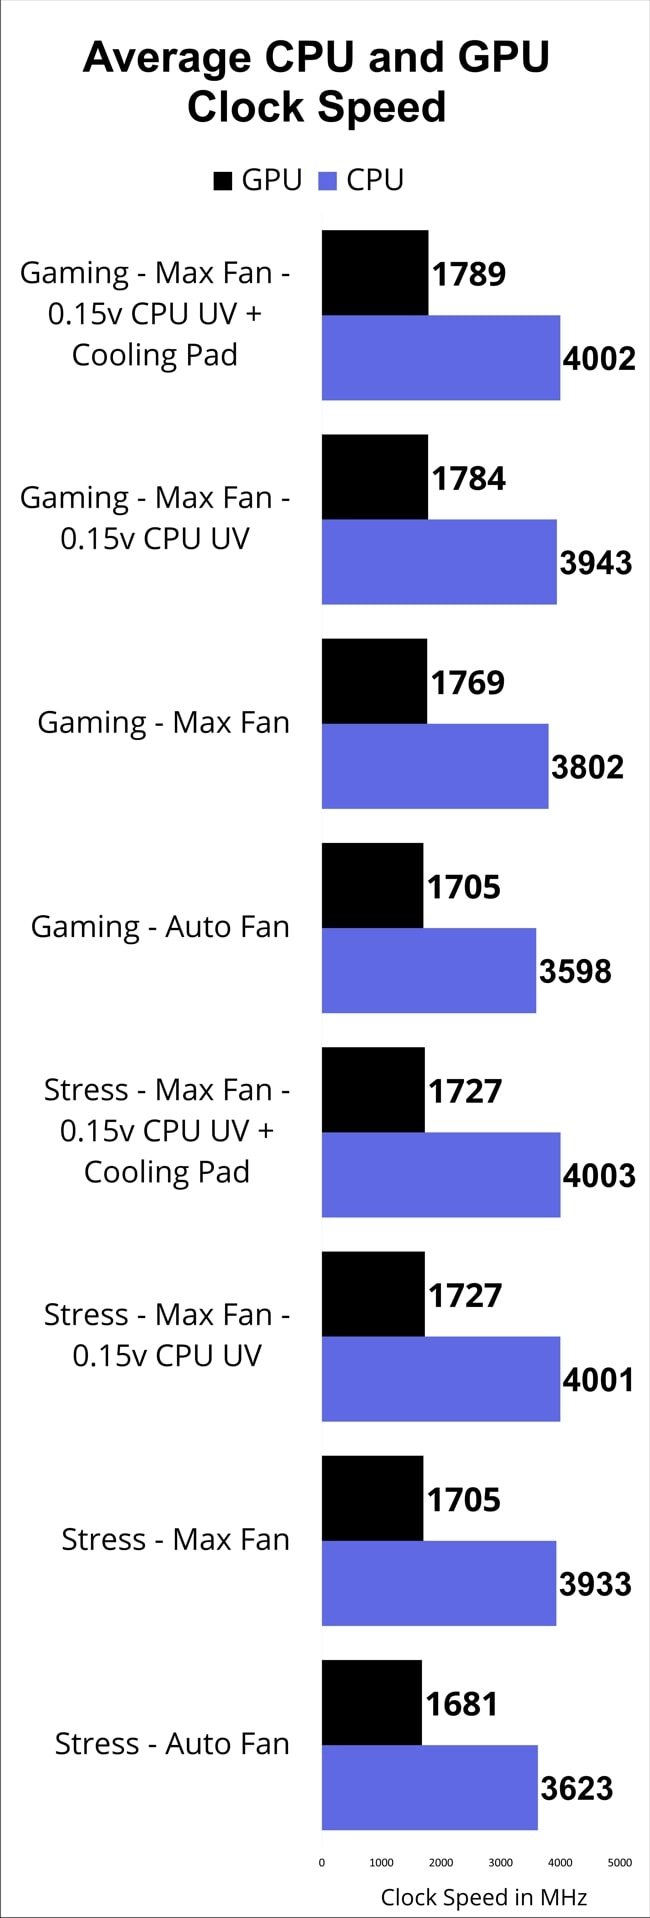 The average CPU and GPU clock speed of average of 3 runs for different modes of stress tests using AIDA64 and gaming tests on Acer Nitro 5 AN515 laptop.